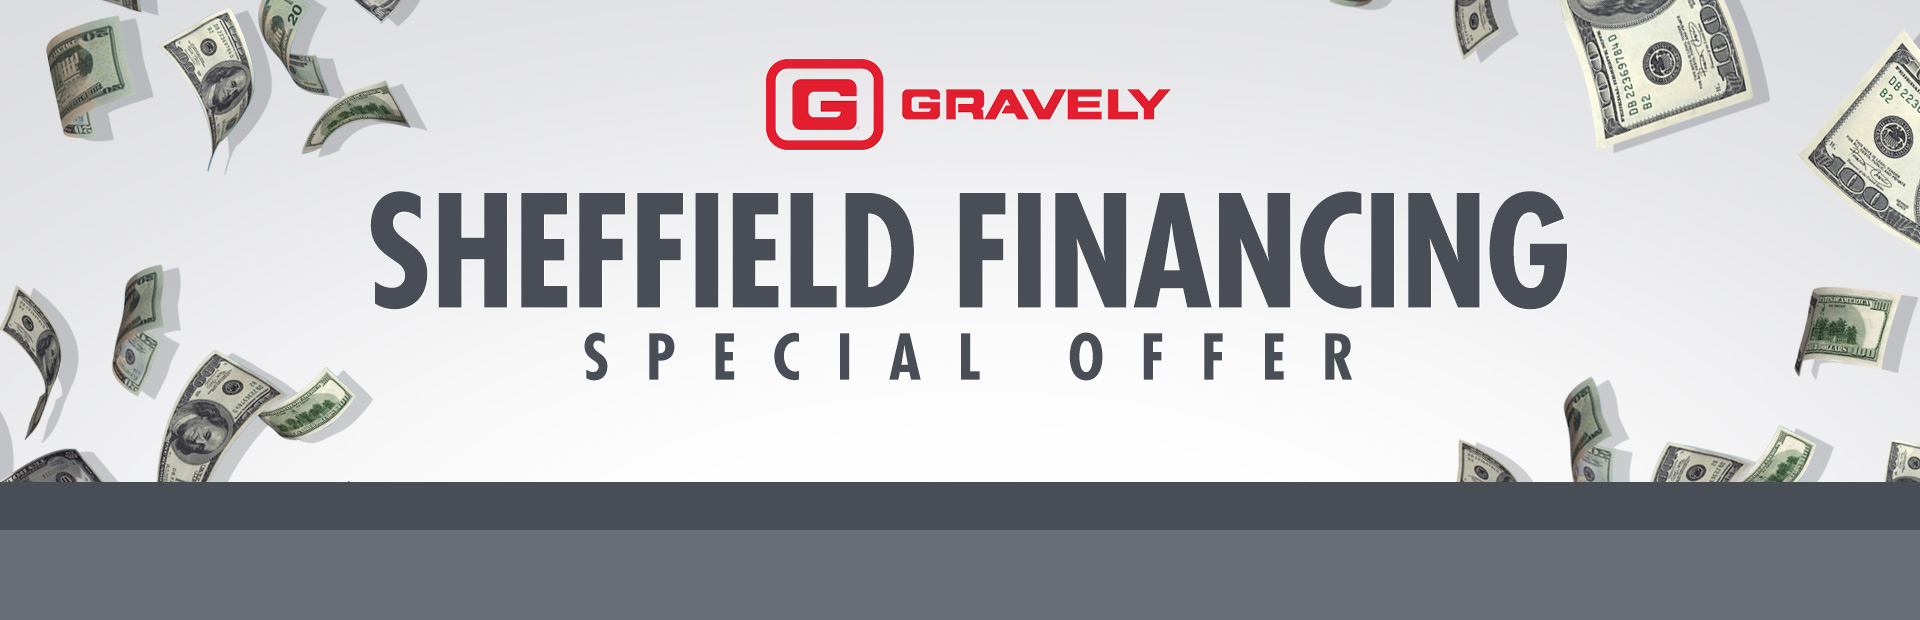 Sheffield Financing - Special Offer